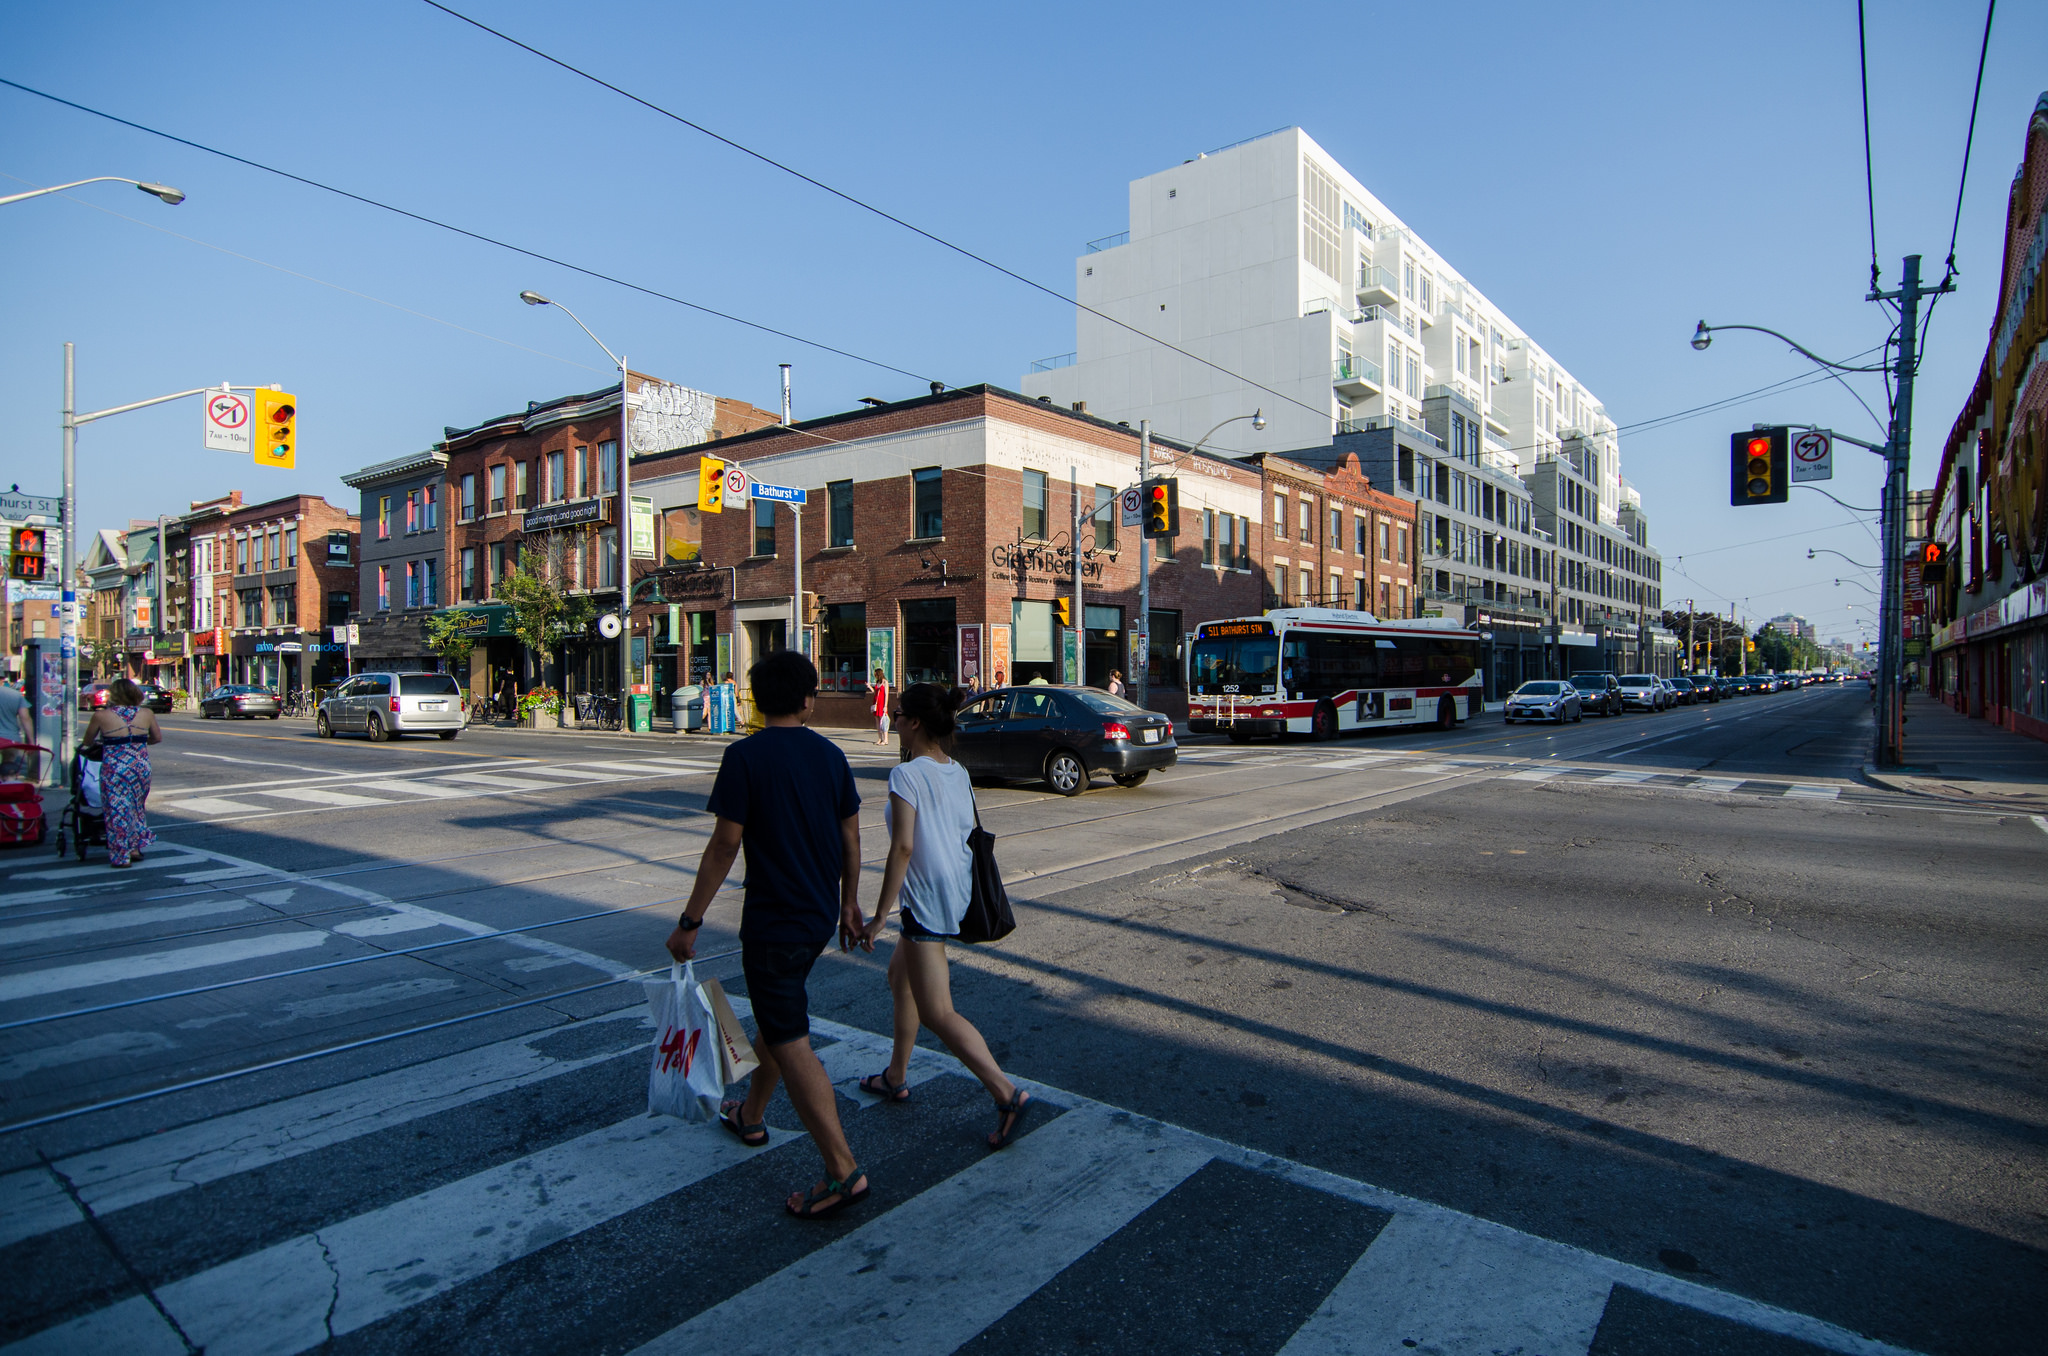 Photo of Bloor West streets and cars.